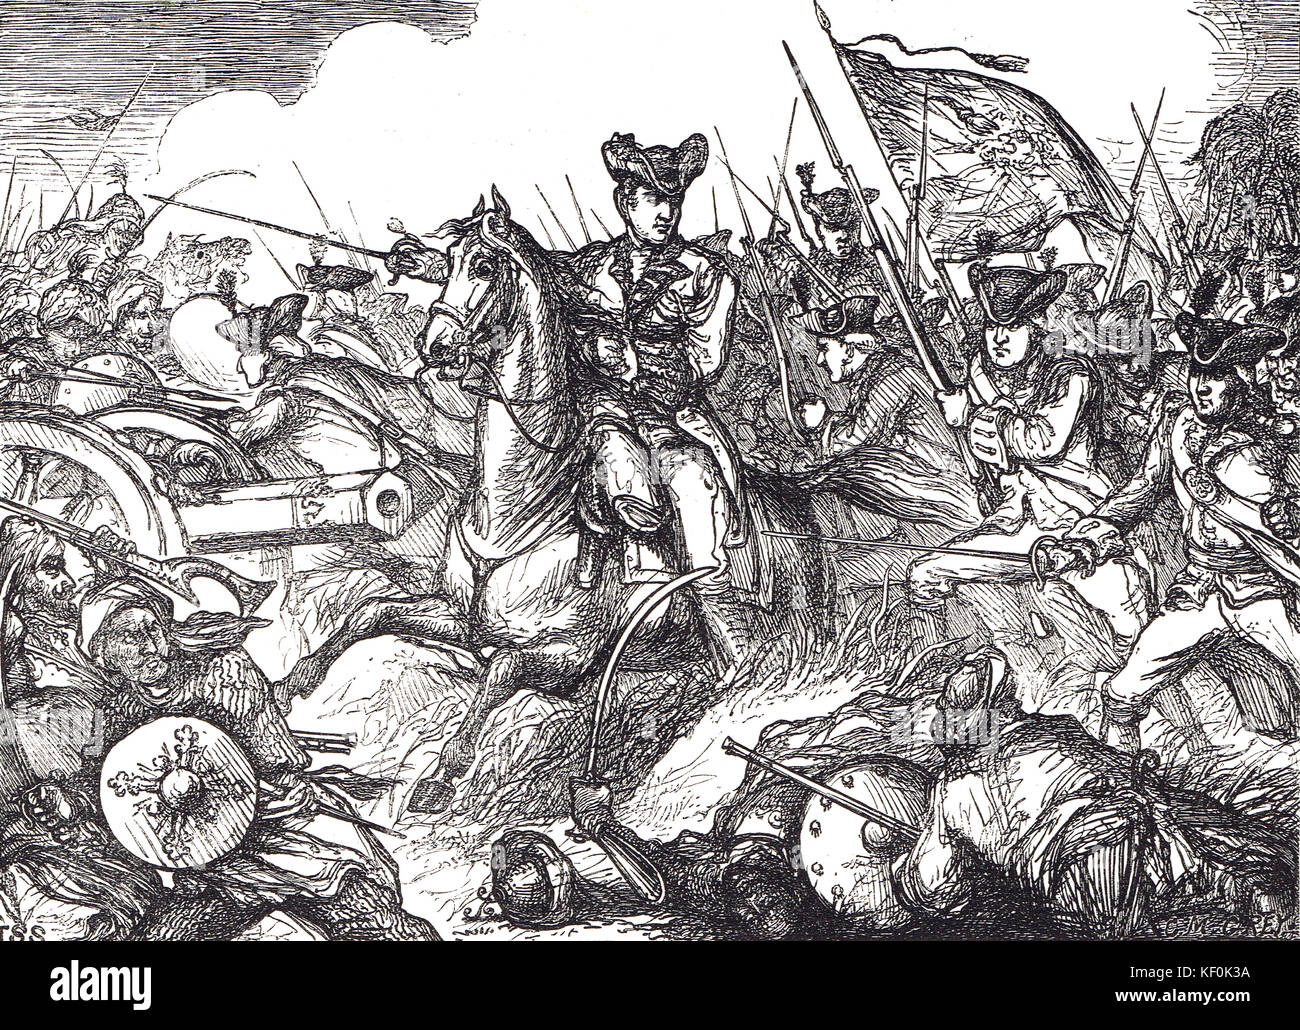 Lord Clive (Clive of India) at The Battle of Plassey, 23 June 1757 - Stock Image